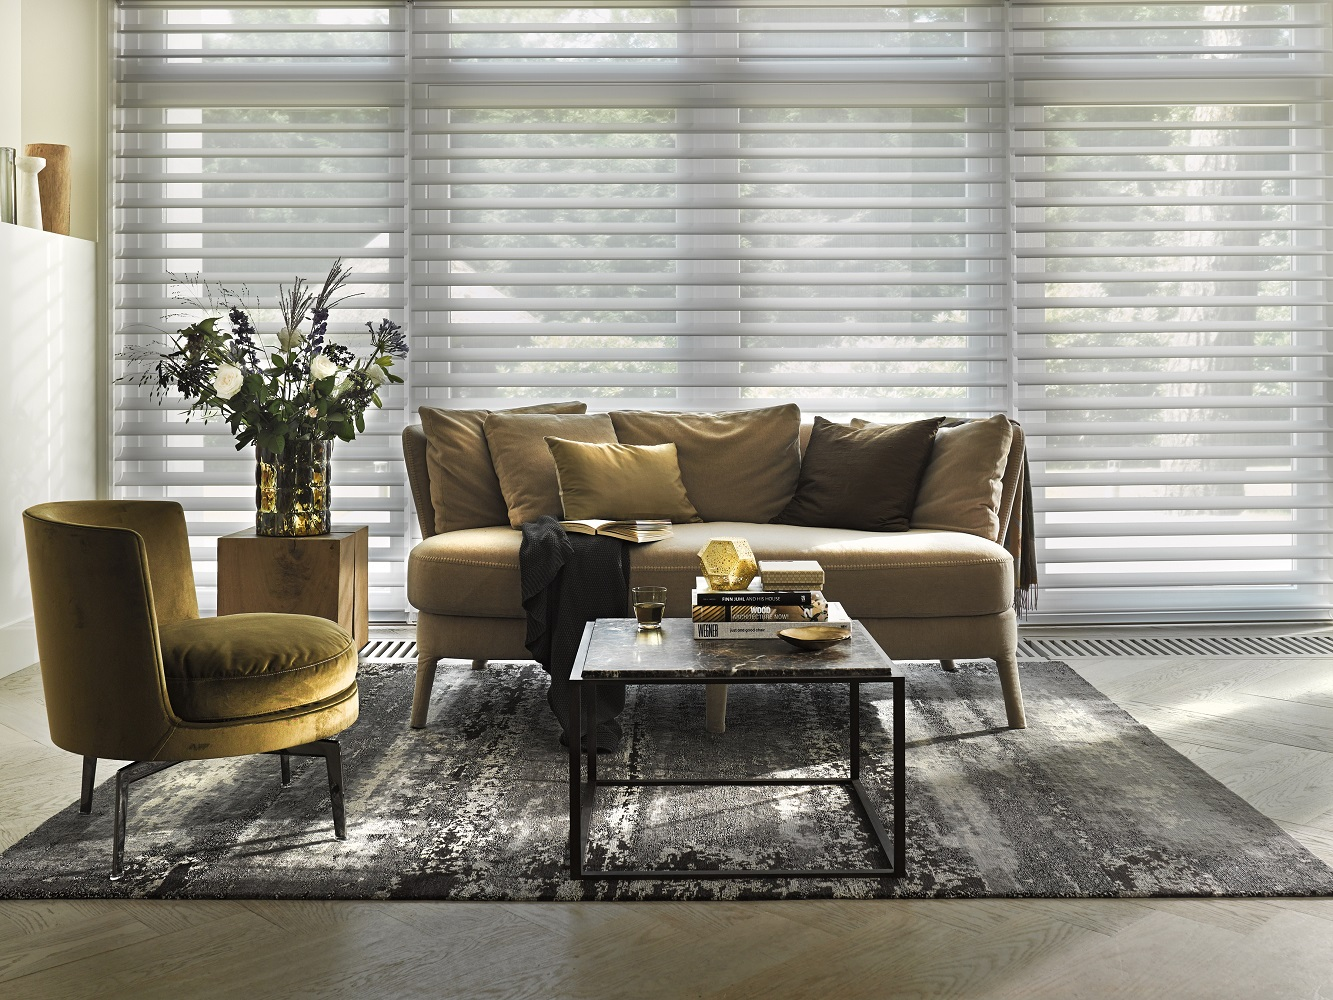 White Silhouette Room